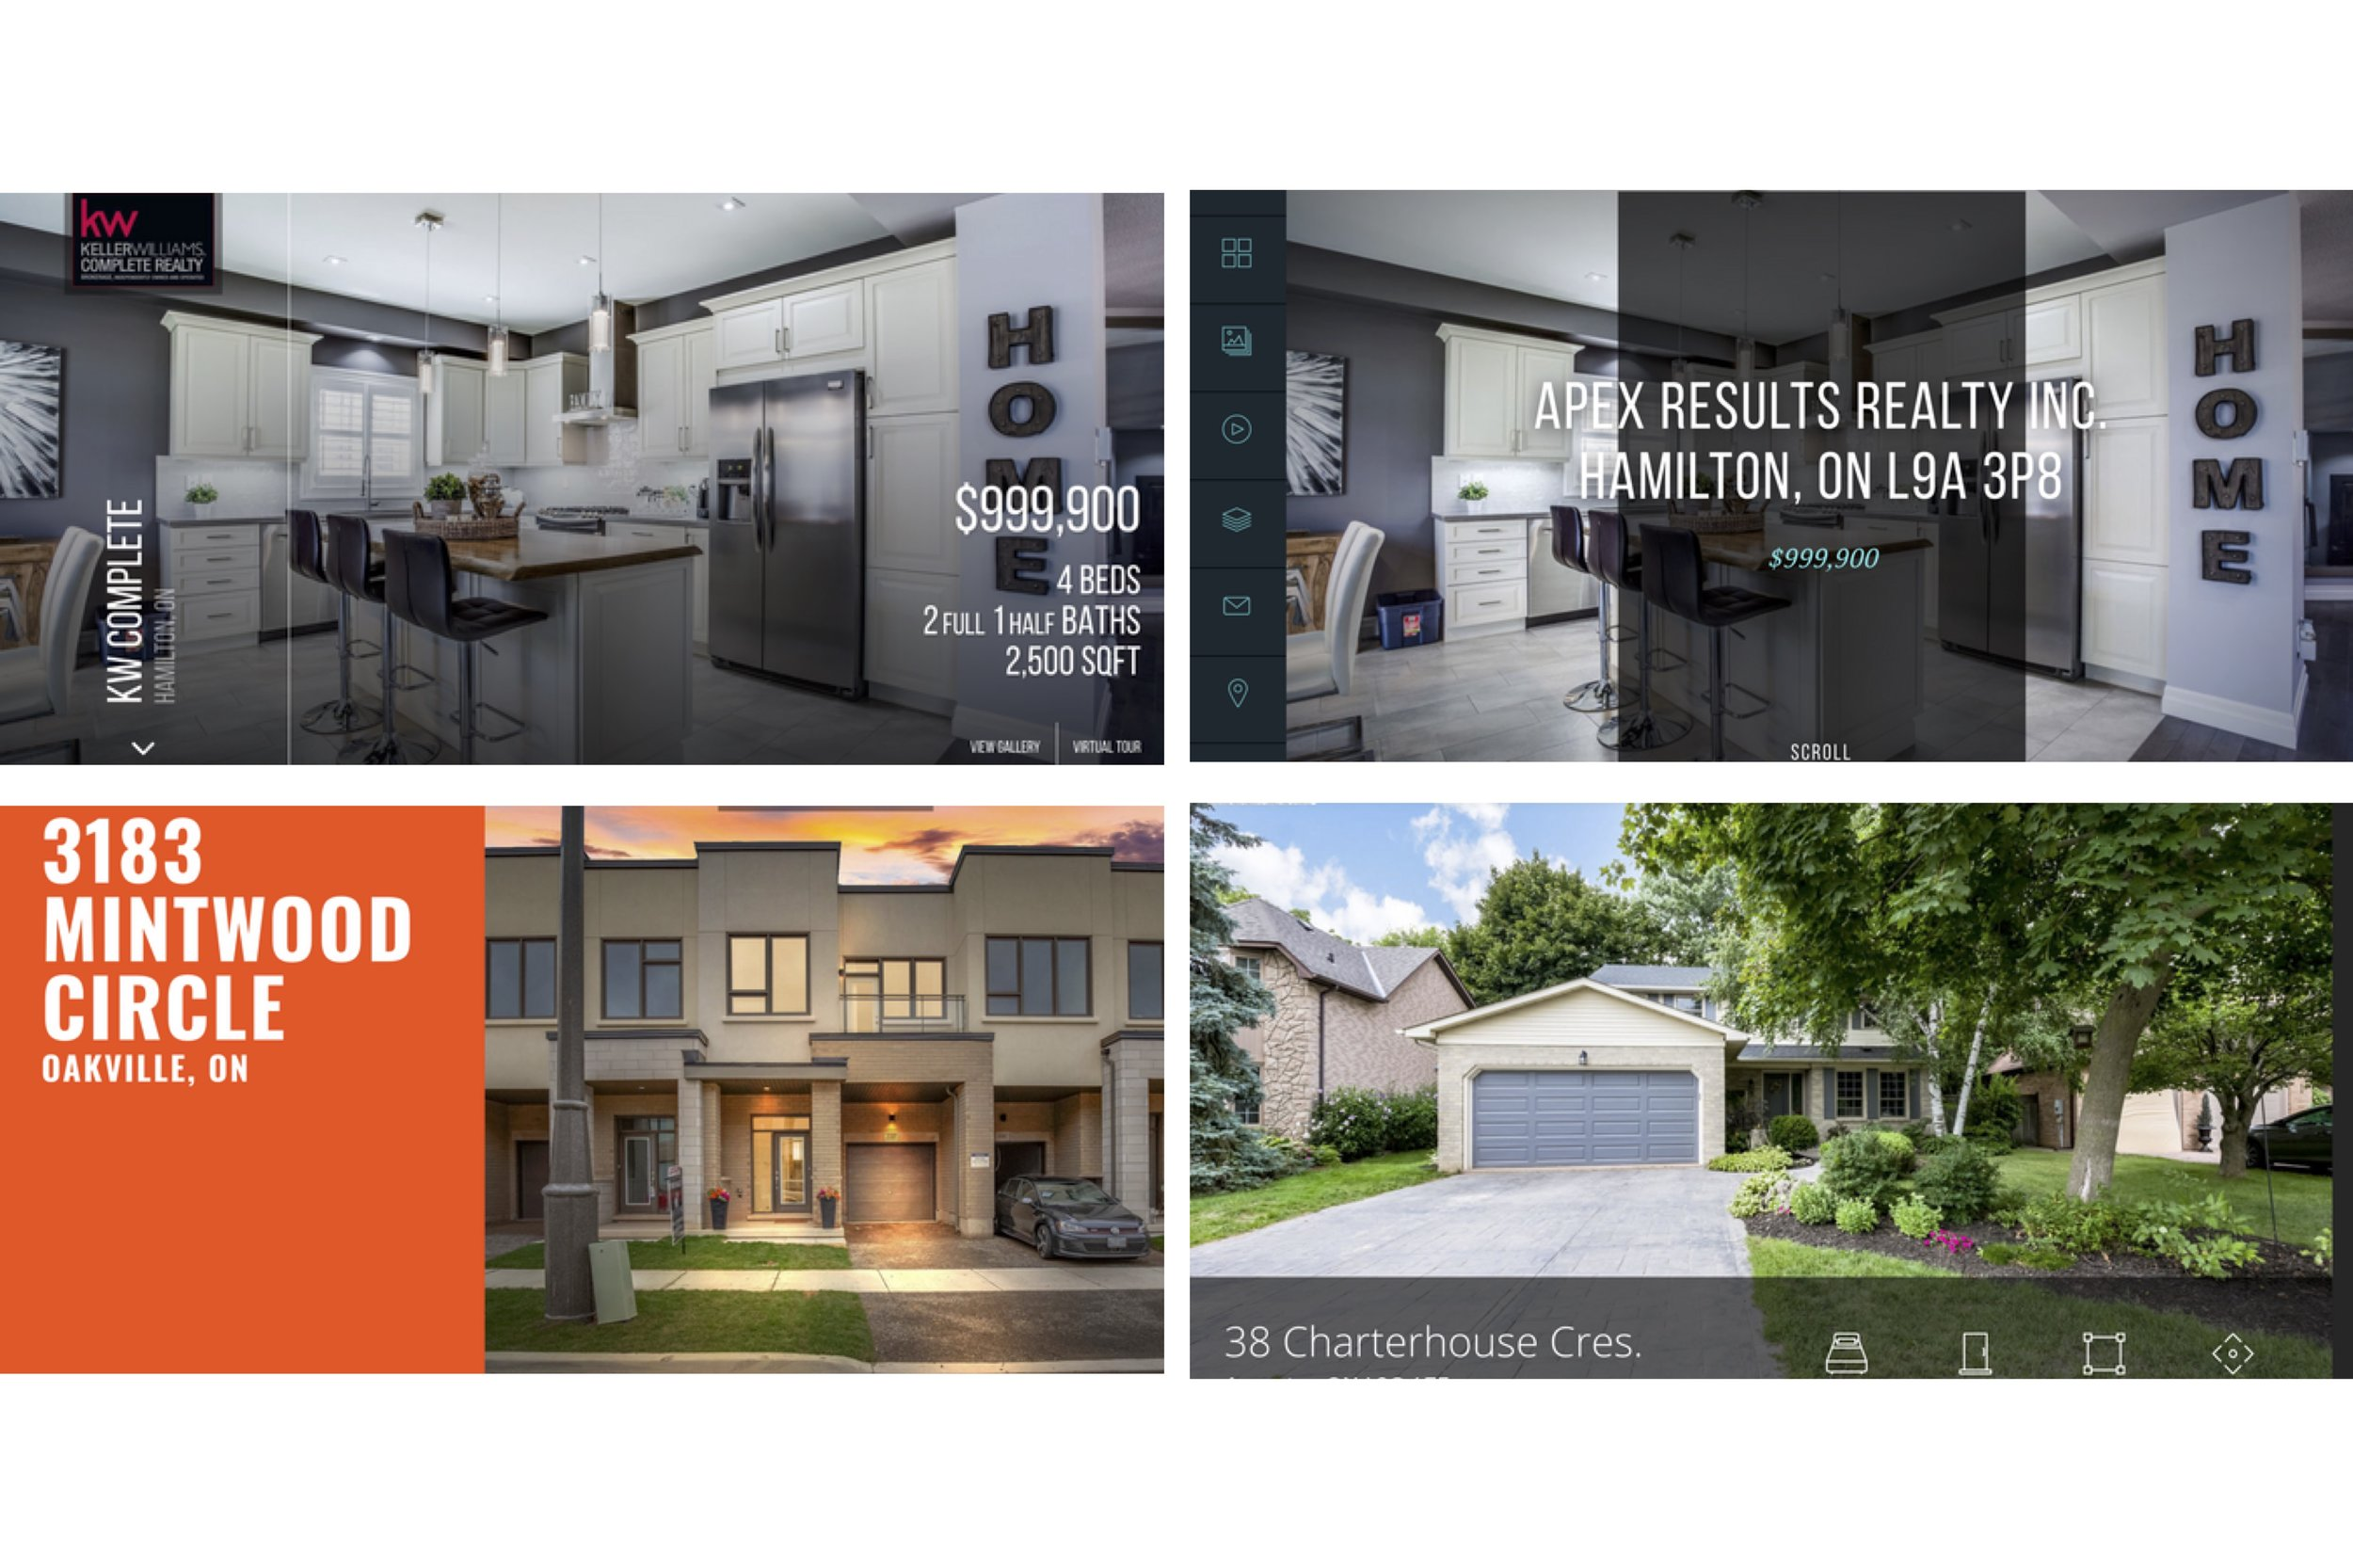 Single Page Property Websites - Beautiful websites made to showcase your listing.